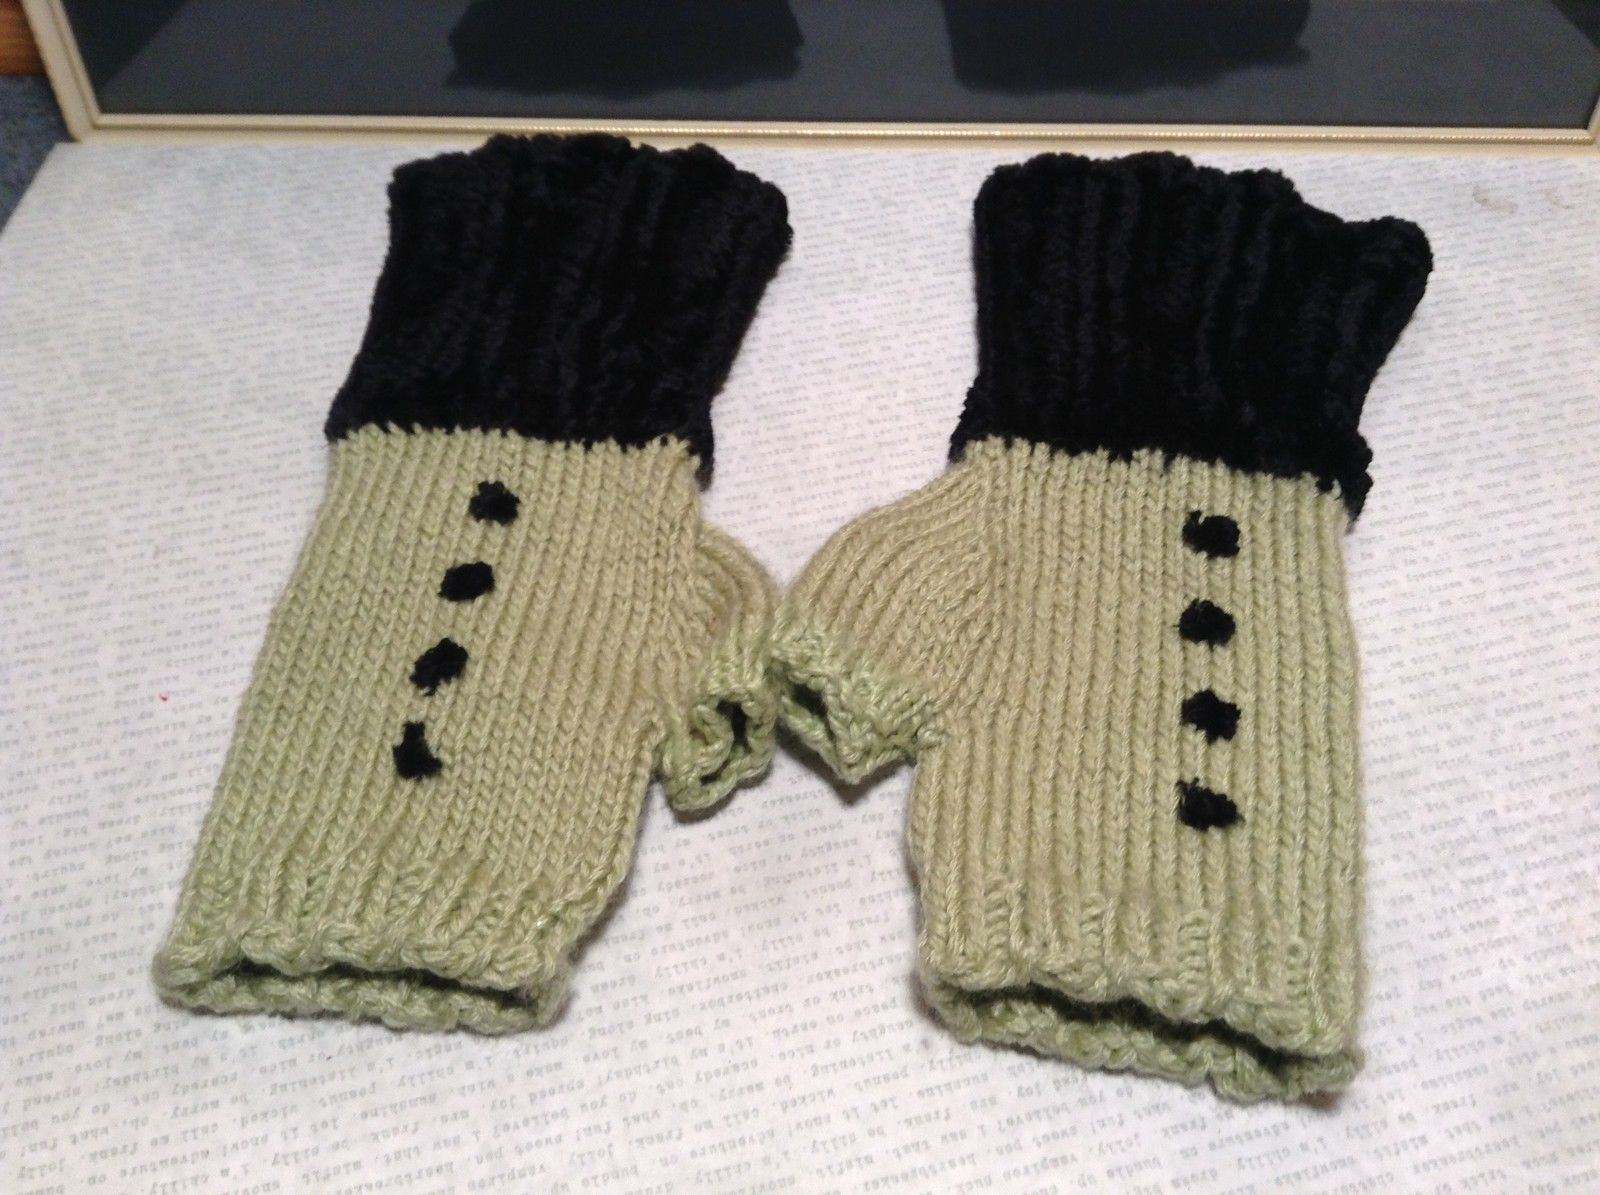 Green Black Fuzzy Woven Gloves Fingerless Very Soft Black Portion Hand Knitted